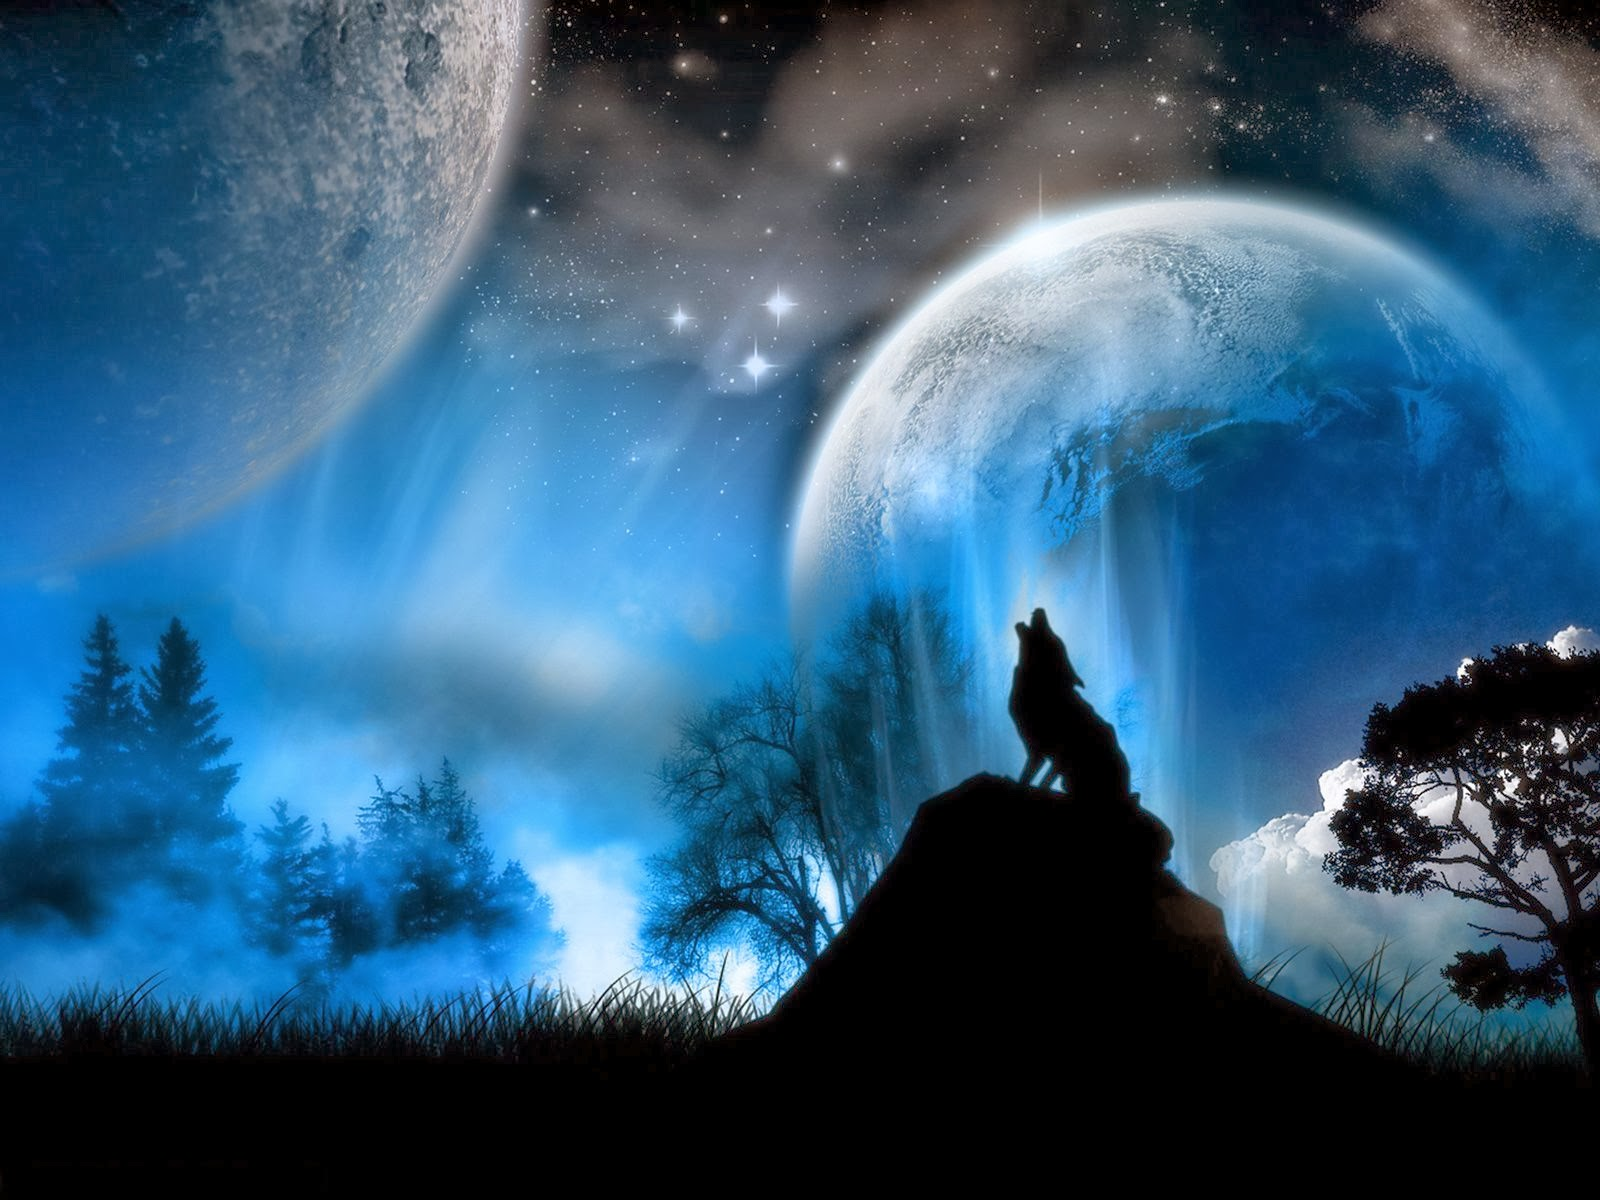 Black And White Wolves 370262 Hd Wallpaper Backgrounds Download